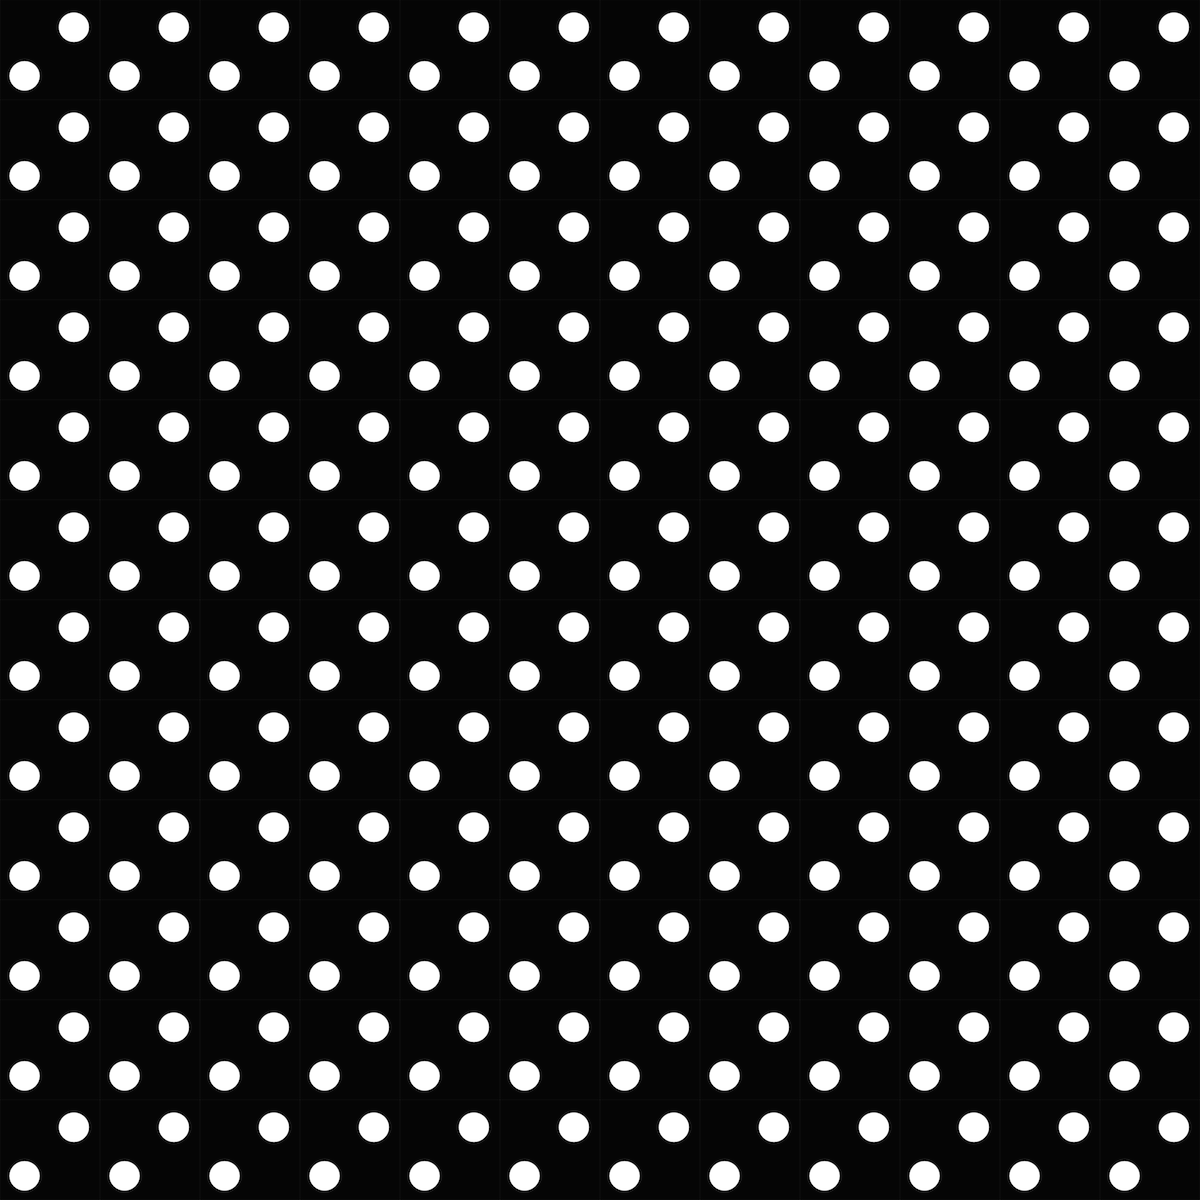 free digital black-and-white scrapbooking paper - ausdruckbares ...